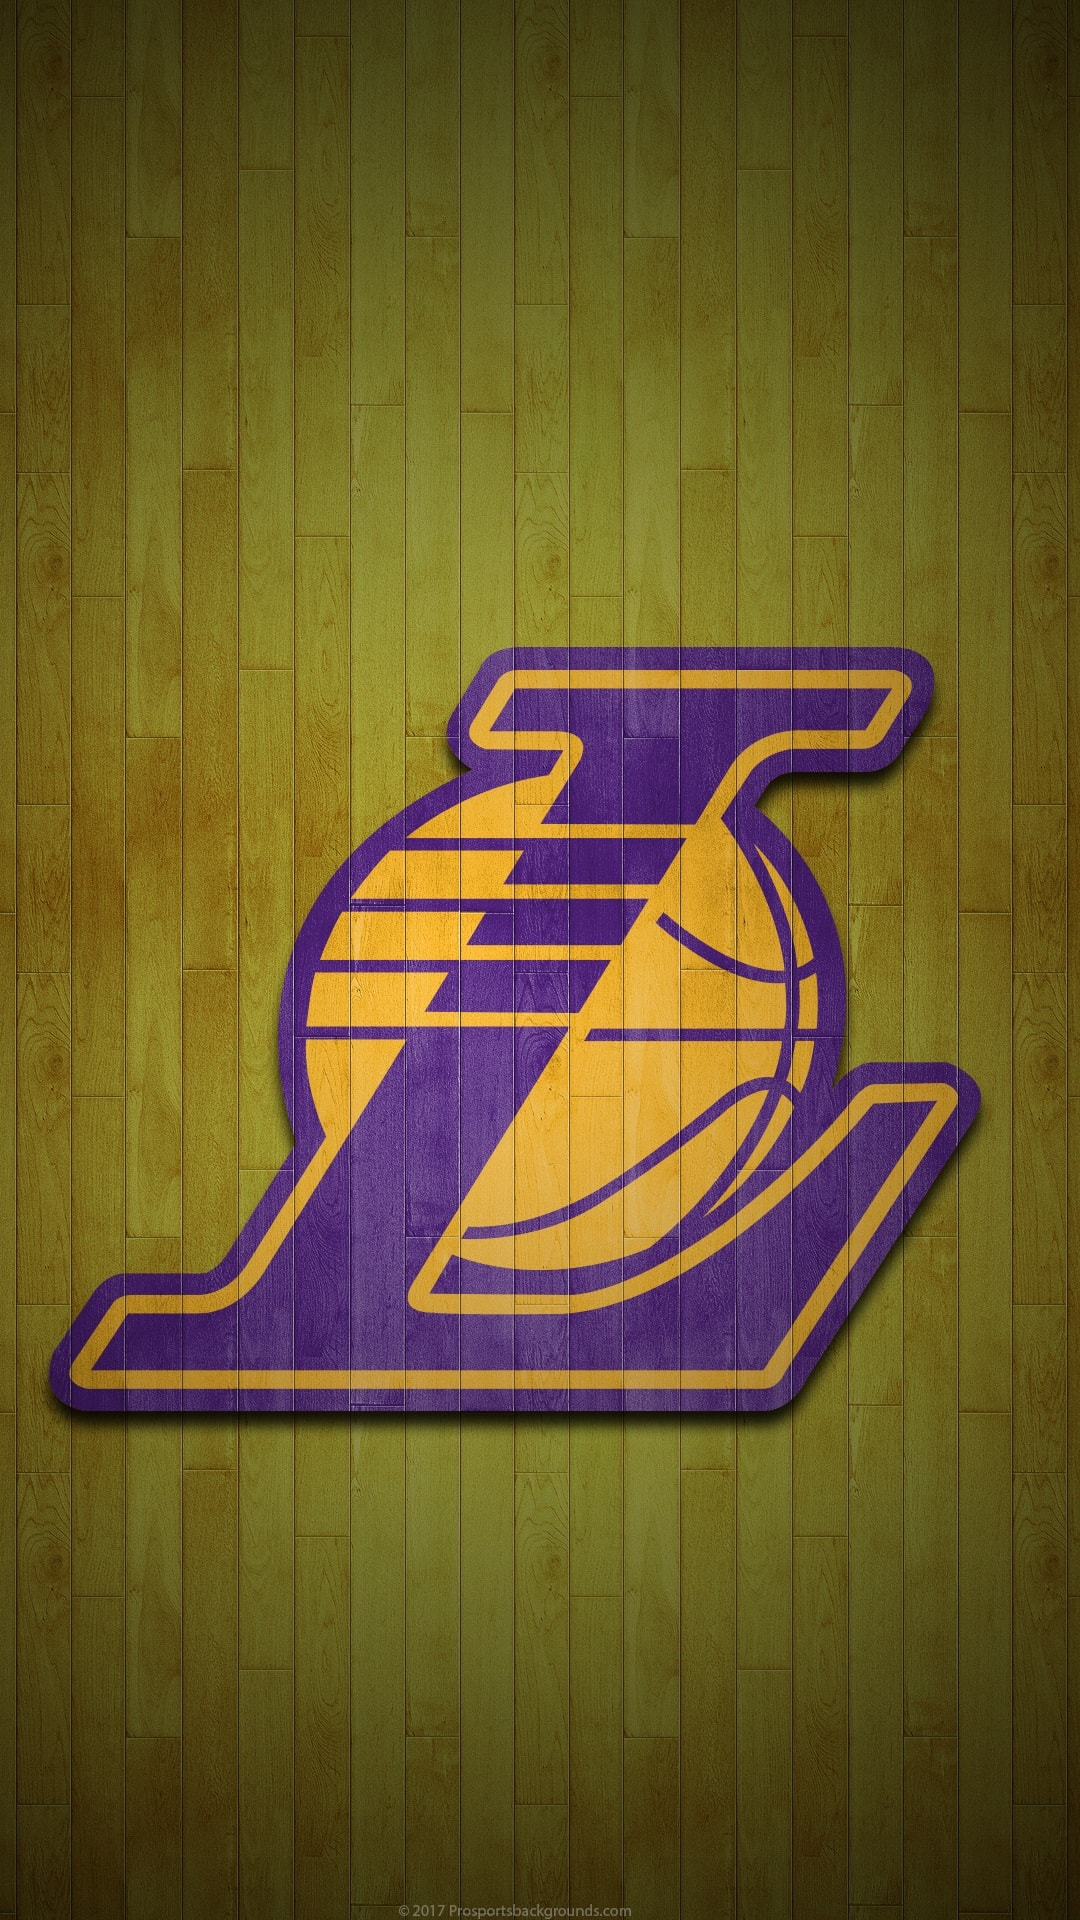 Los Angeles Lakers Wallpaper Iphone Kolpaper Awesome Free Hd Wallpapers